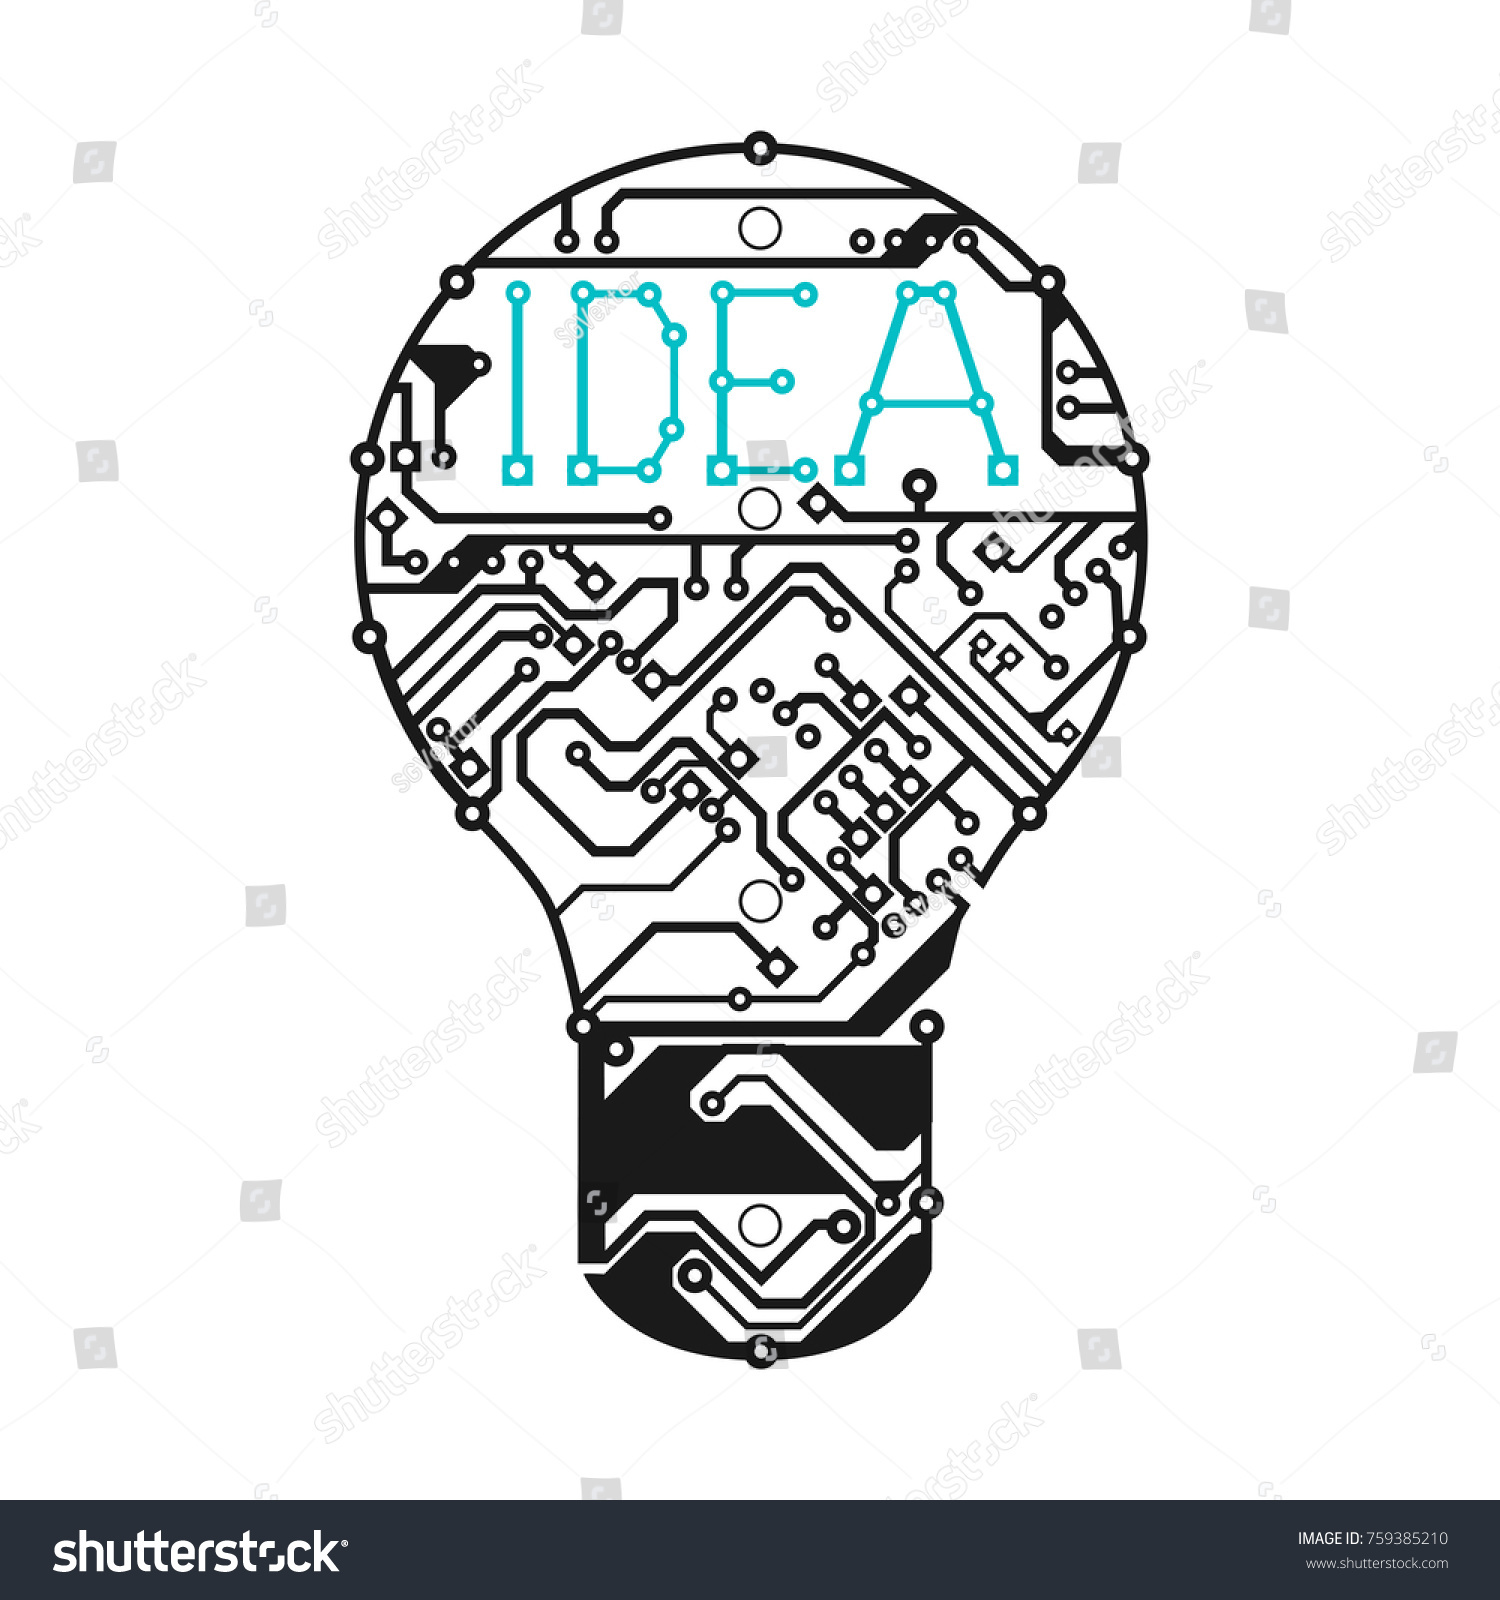 Modern Printed Circuit Board Symbol Photo - Everything You Need to ...